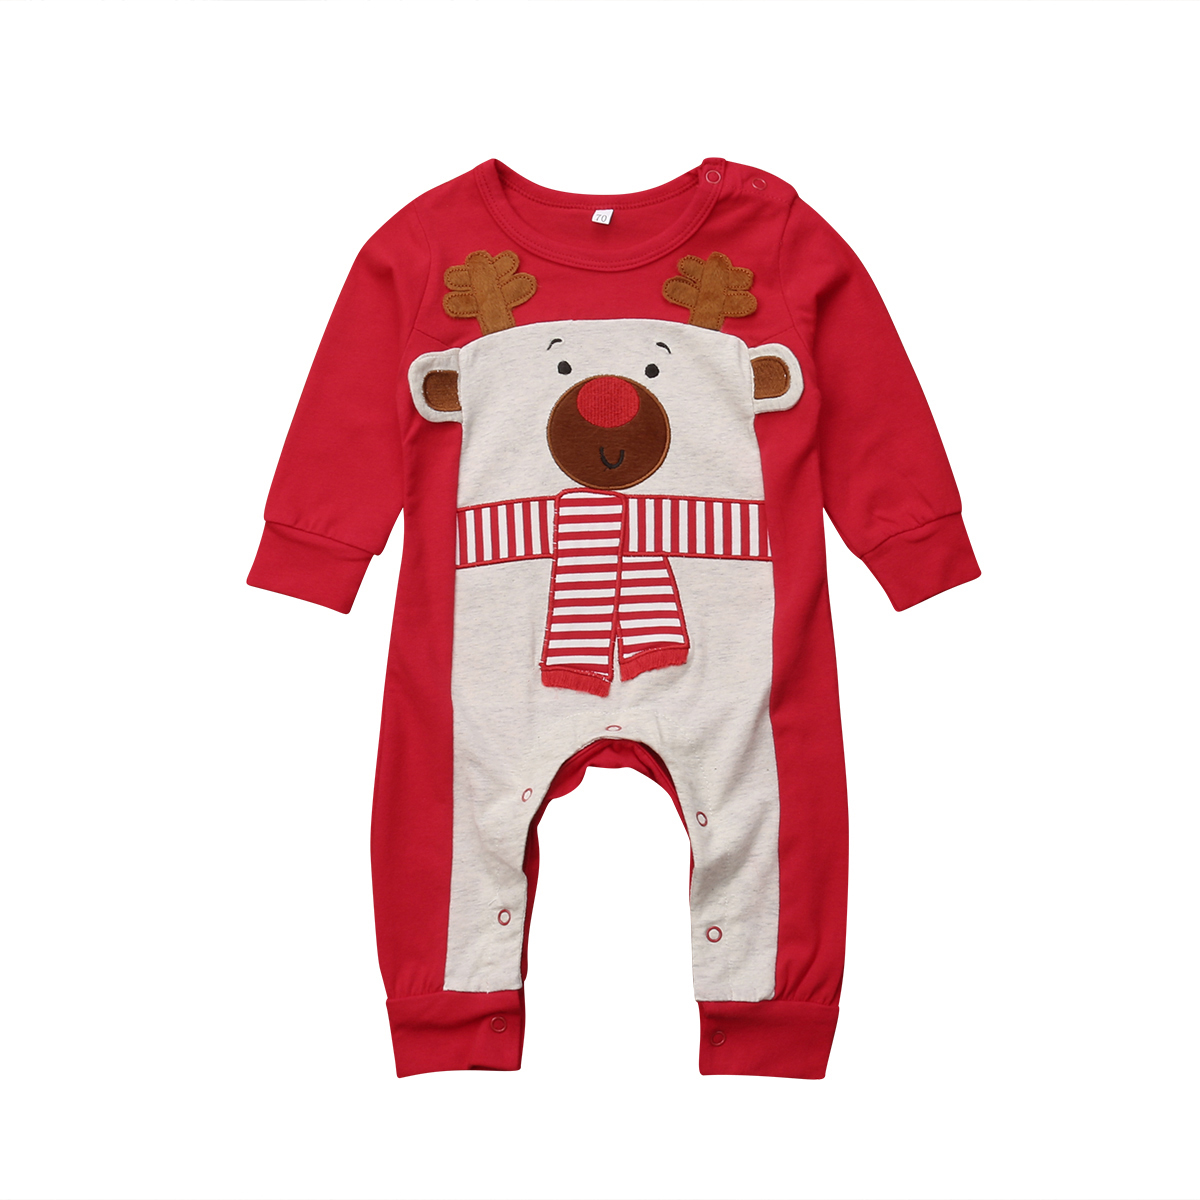 Rompers Girls' Baby Clothing Adaptable Brand New Kids Newborn Baby Boy Girl Kids Christmas Bear Coverall Romper Jumpsuit Playsuit Clothes Outfit